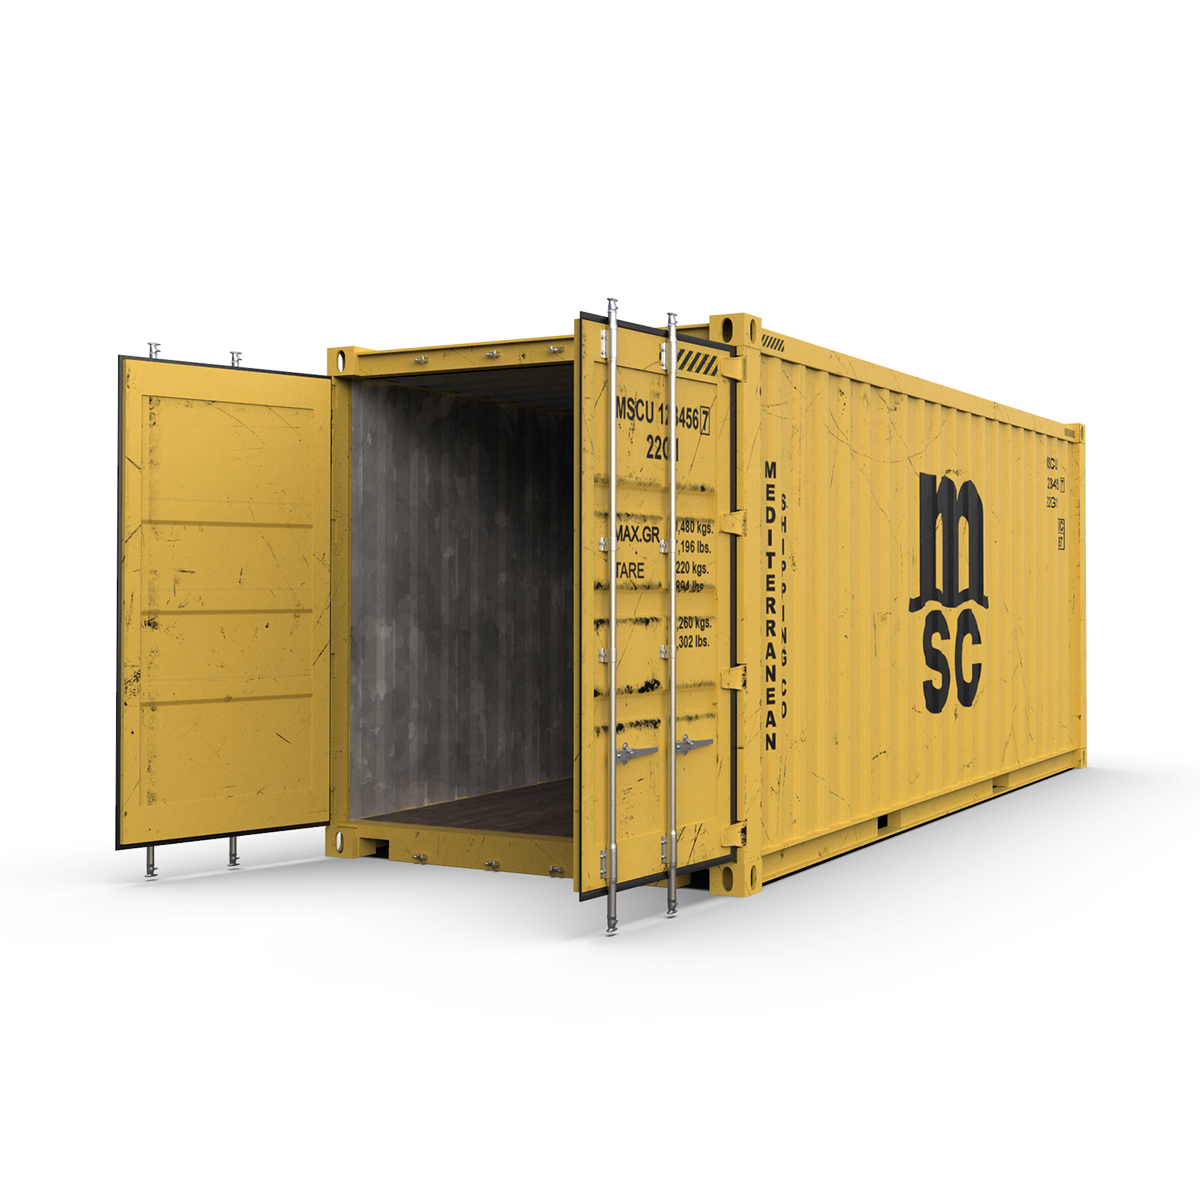 20 feet msc standard shipping container 3d model 3ds max fbx ma mb obj 278385